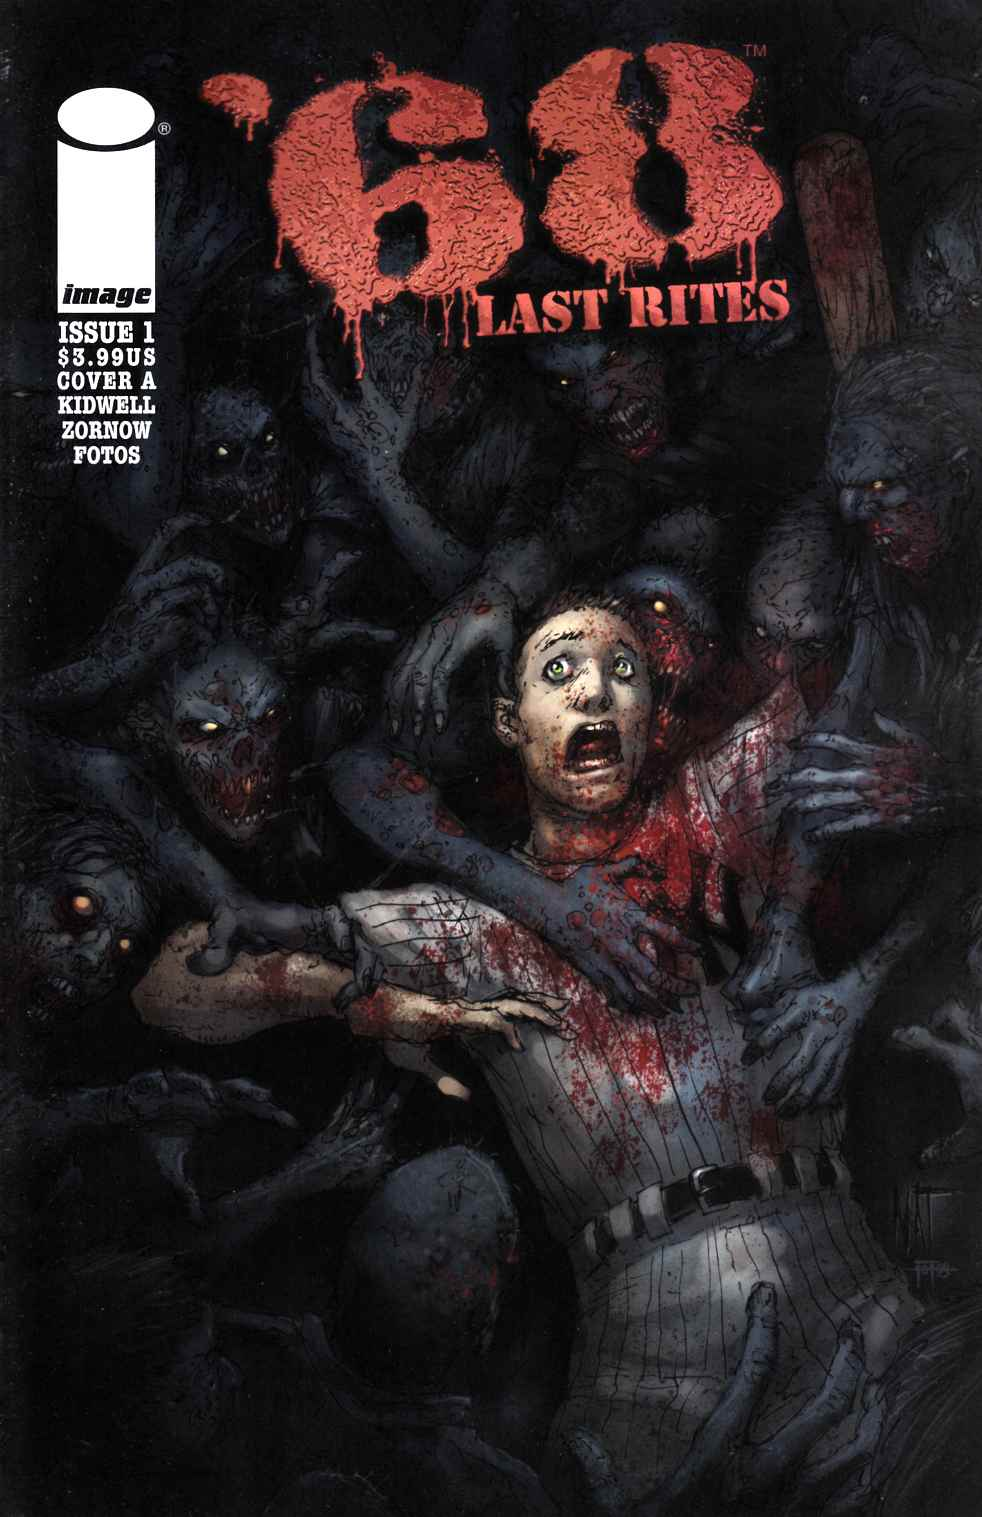 68 Last Rights #1 Cover A- Jones & Fotos [Image Comic] THUMBNAIL